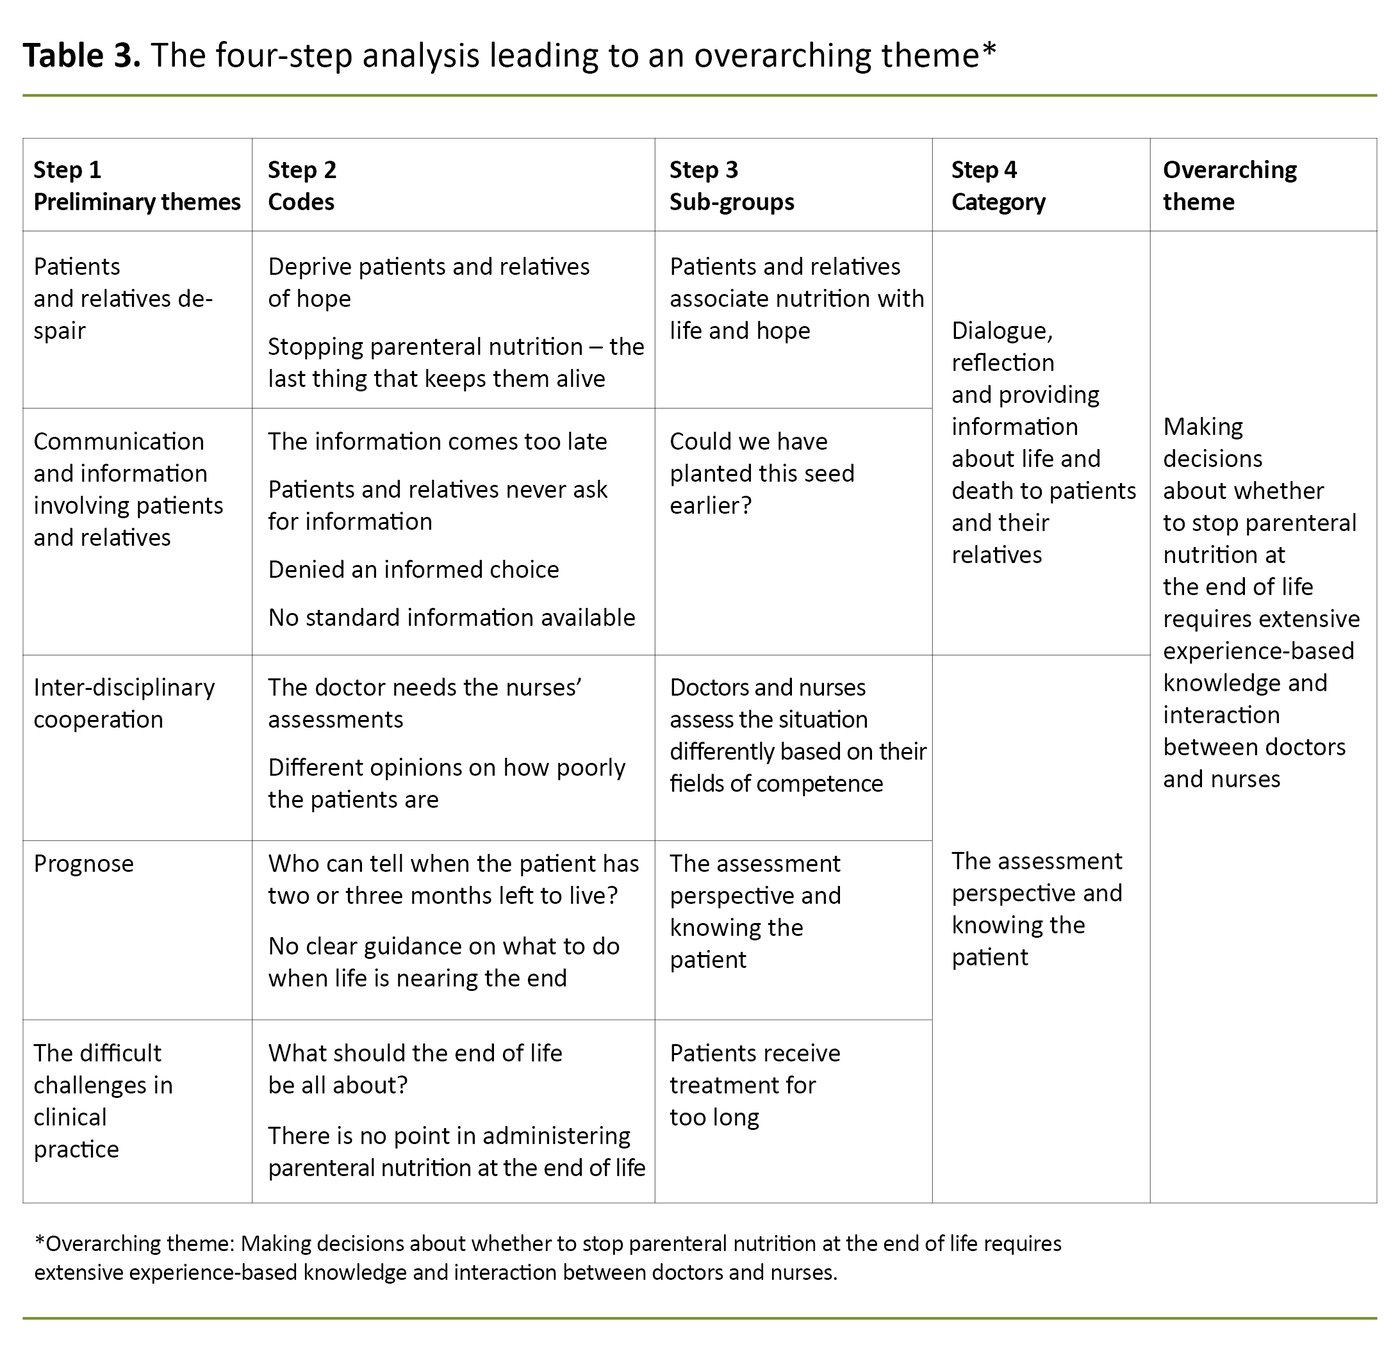 Table 3. The four-step analysis leading to an overarching theme*